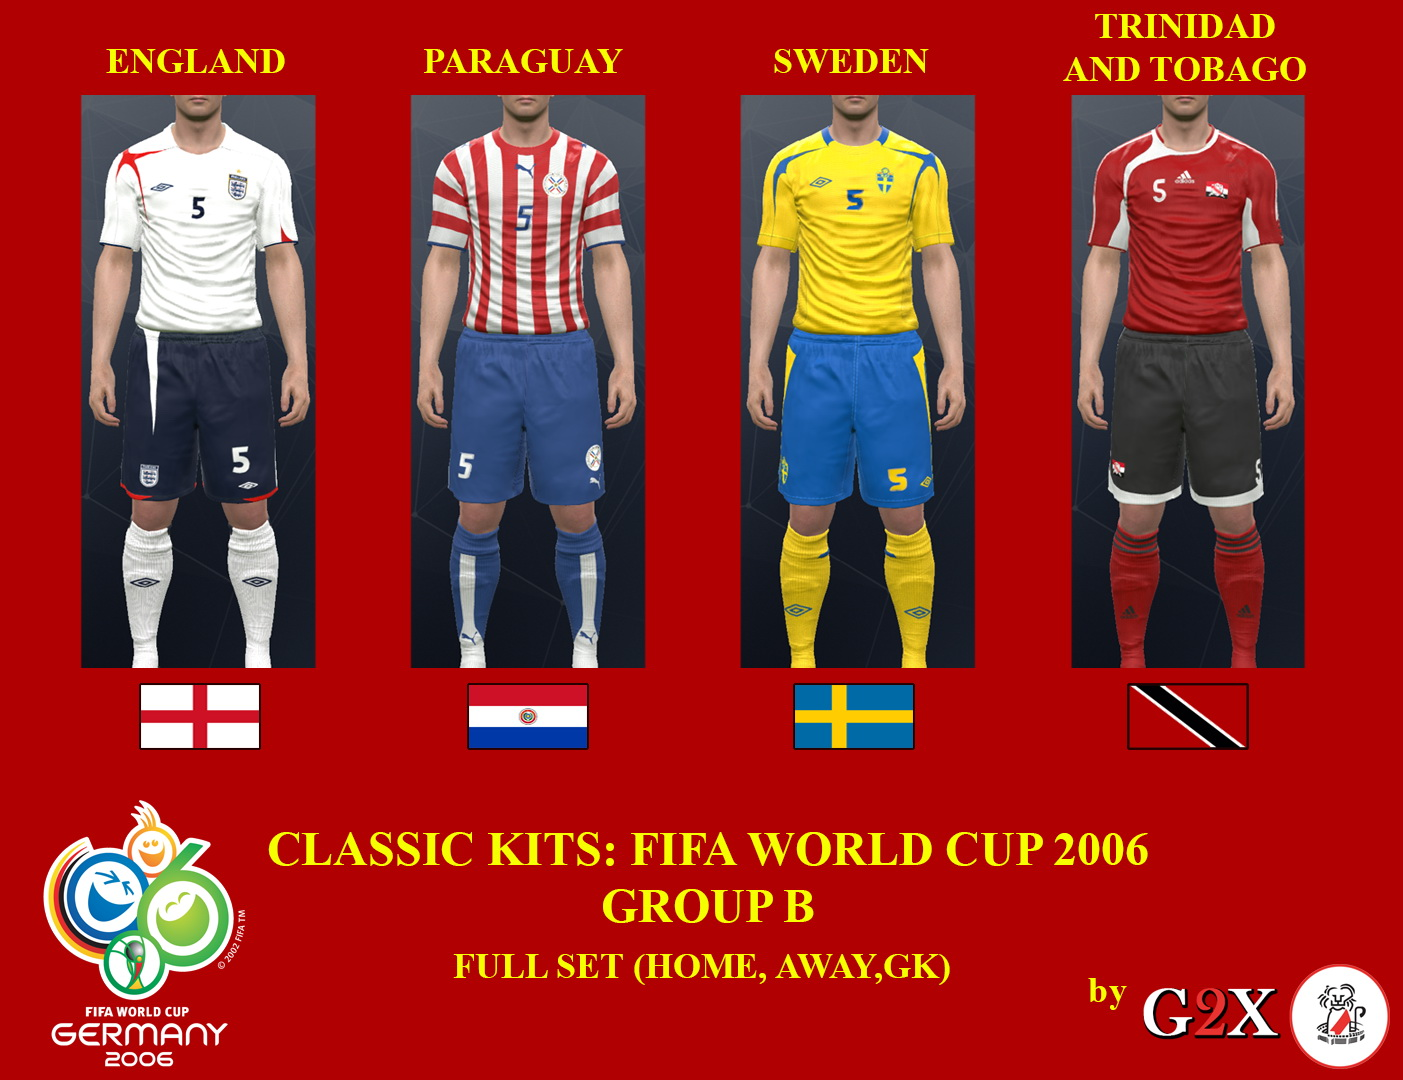 PES 2017 FIFA World Cup 2006 Group B Kits by G2X